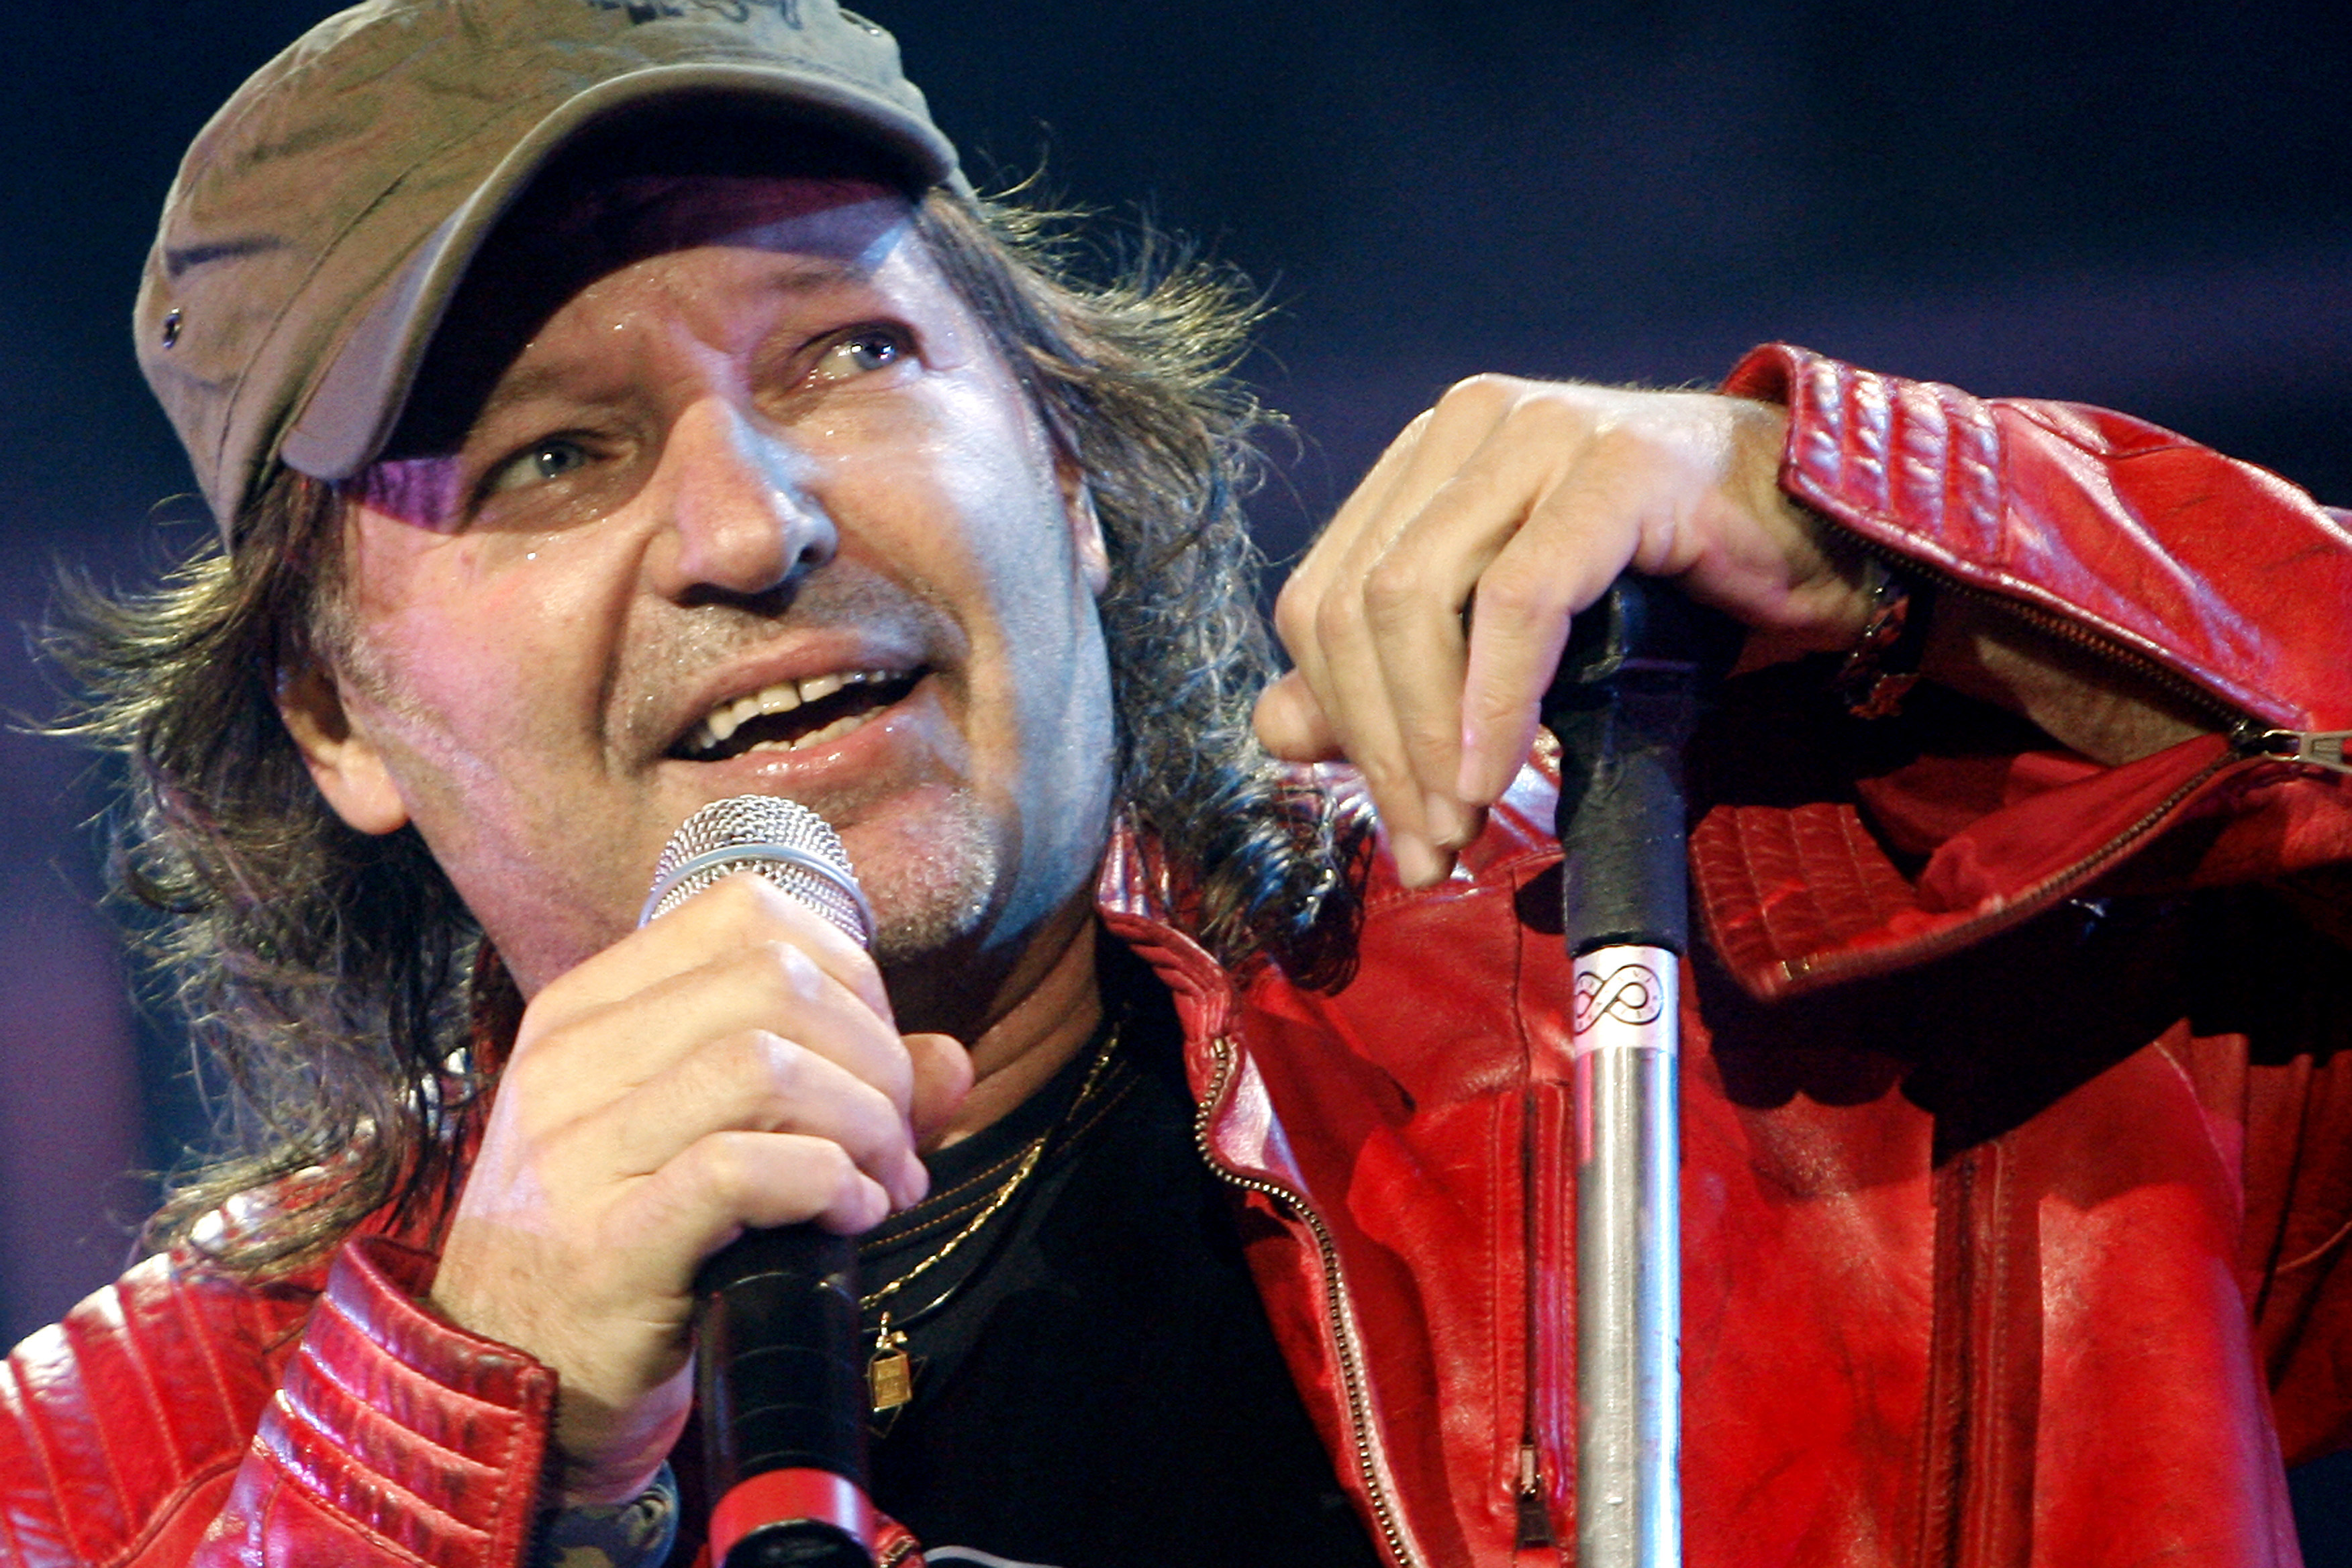 Vasco Rossi tornerà a cantare a Messina